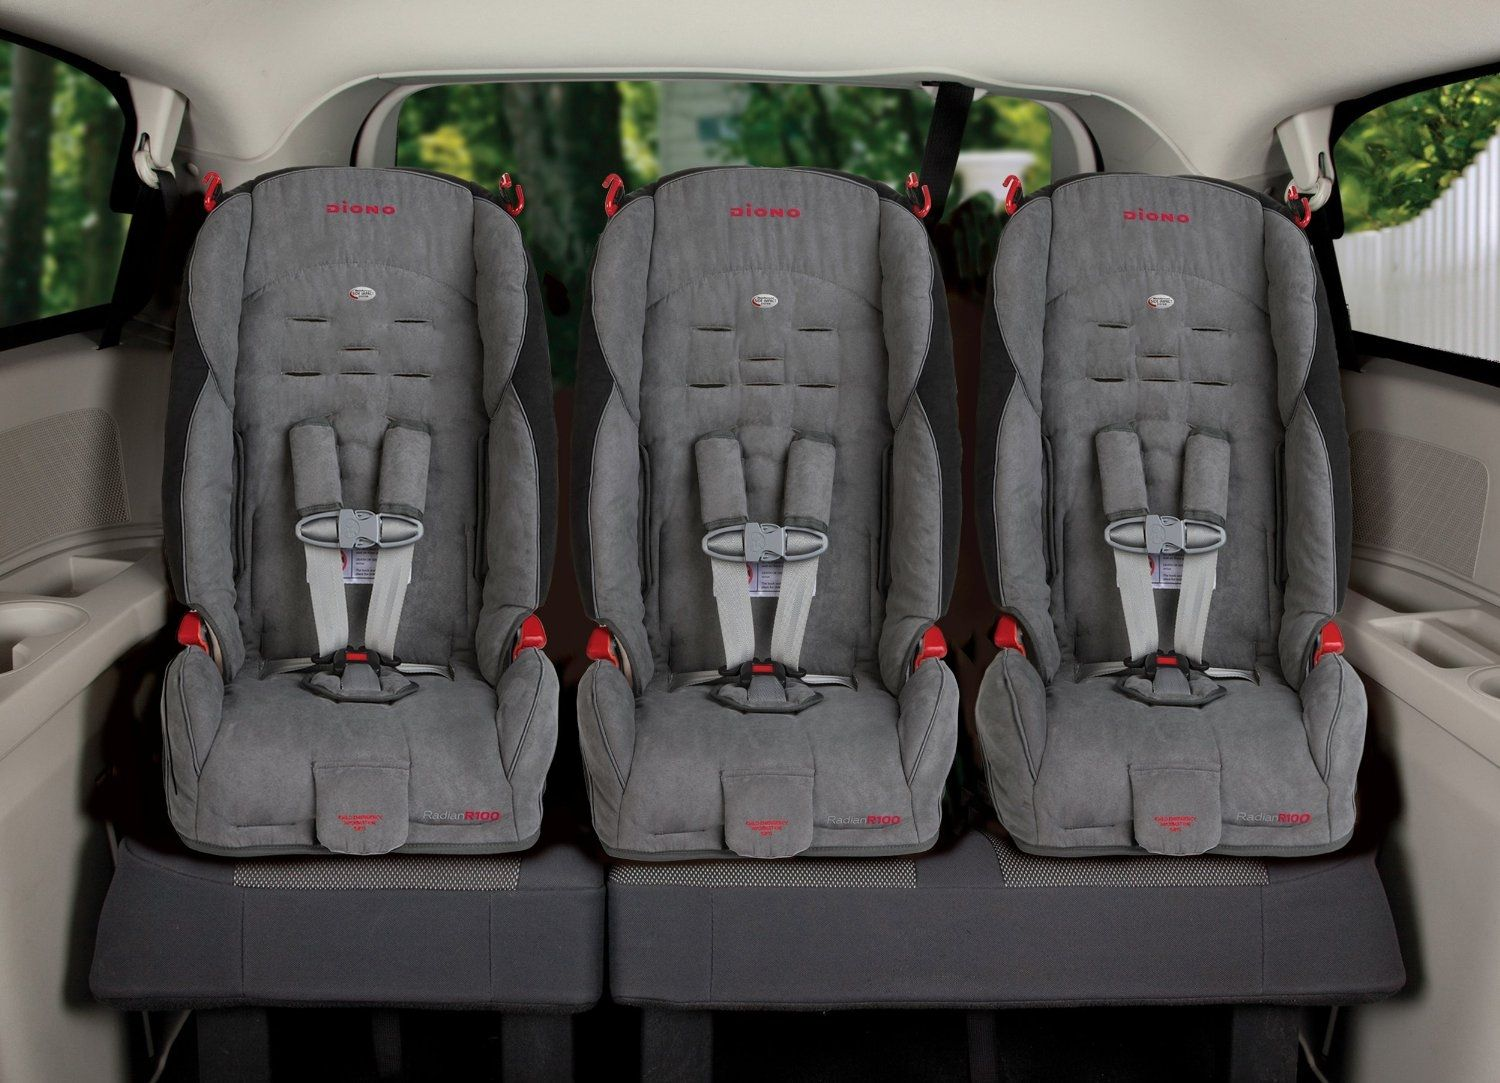 37 car seats that fit 3across in most vehicles (Updated